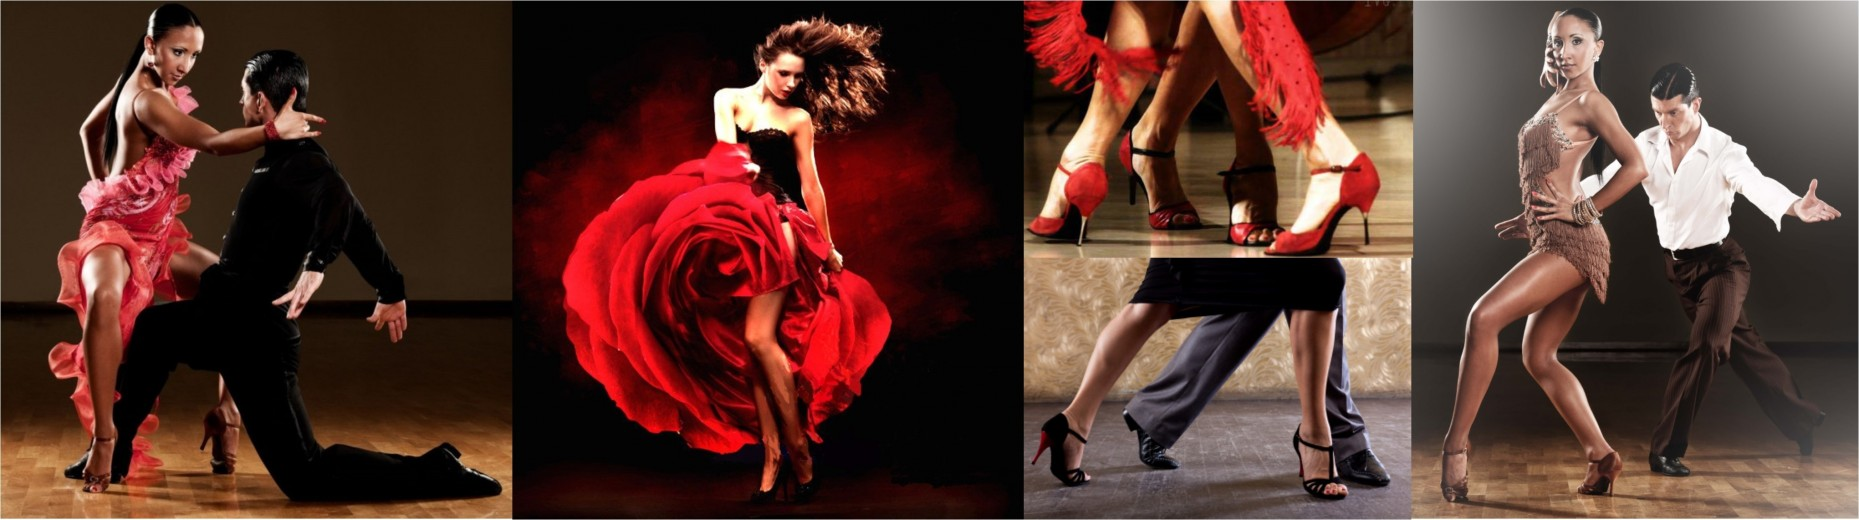 DANSES LATINES, SALSA, KIZOMBA, BACHATA, ROCK, DANSES SPORTIVES, BALLROOM SHOES....